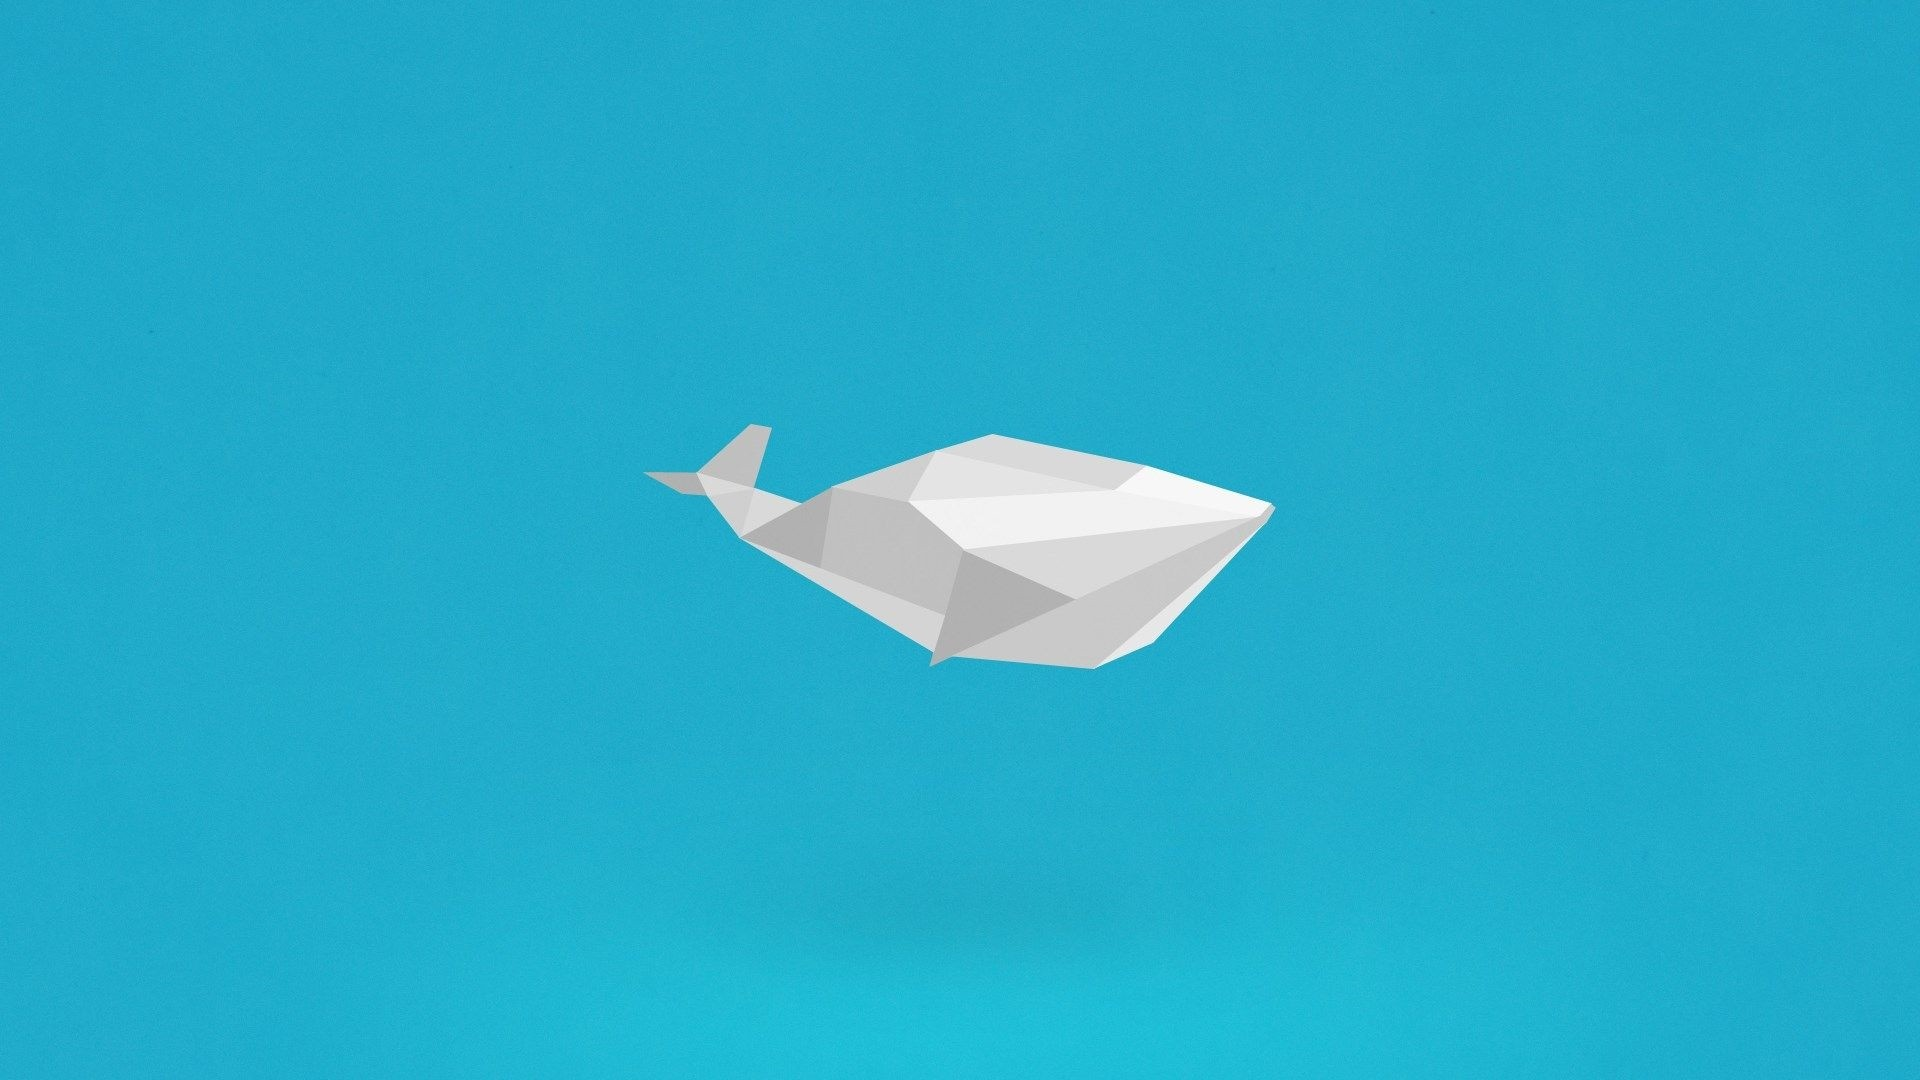 Cute Origami Wallpaper for pc